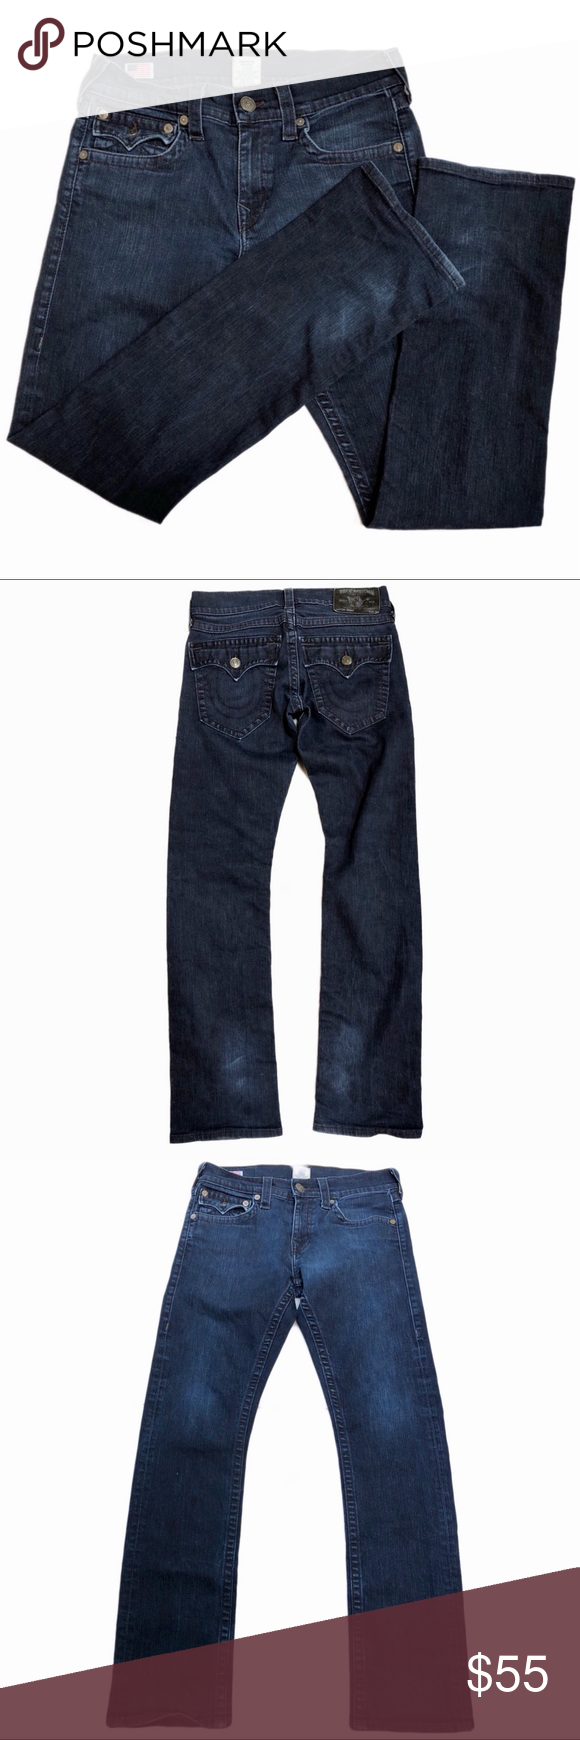 TRUE RELIGION RICKY STRAIGHT FIT JEANS Grab these awesome